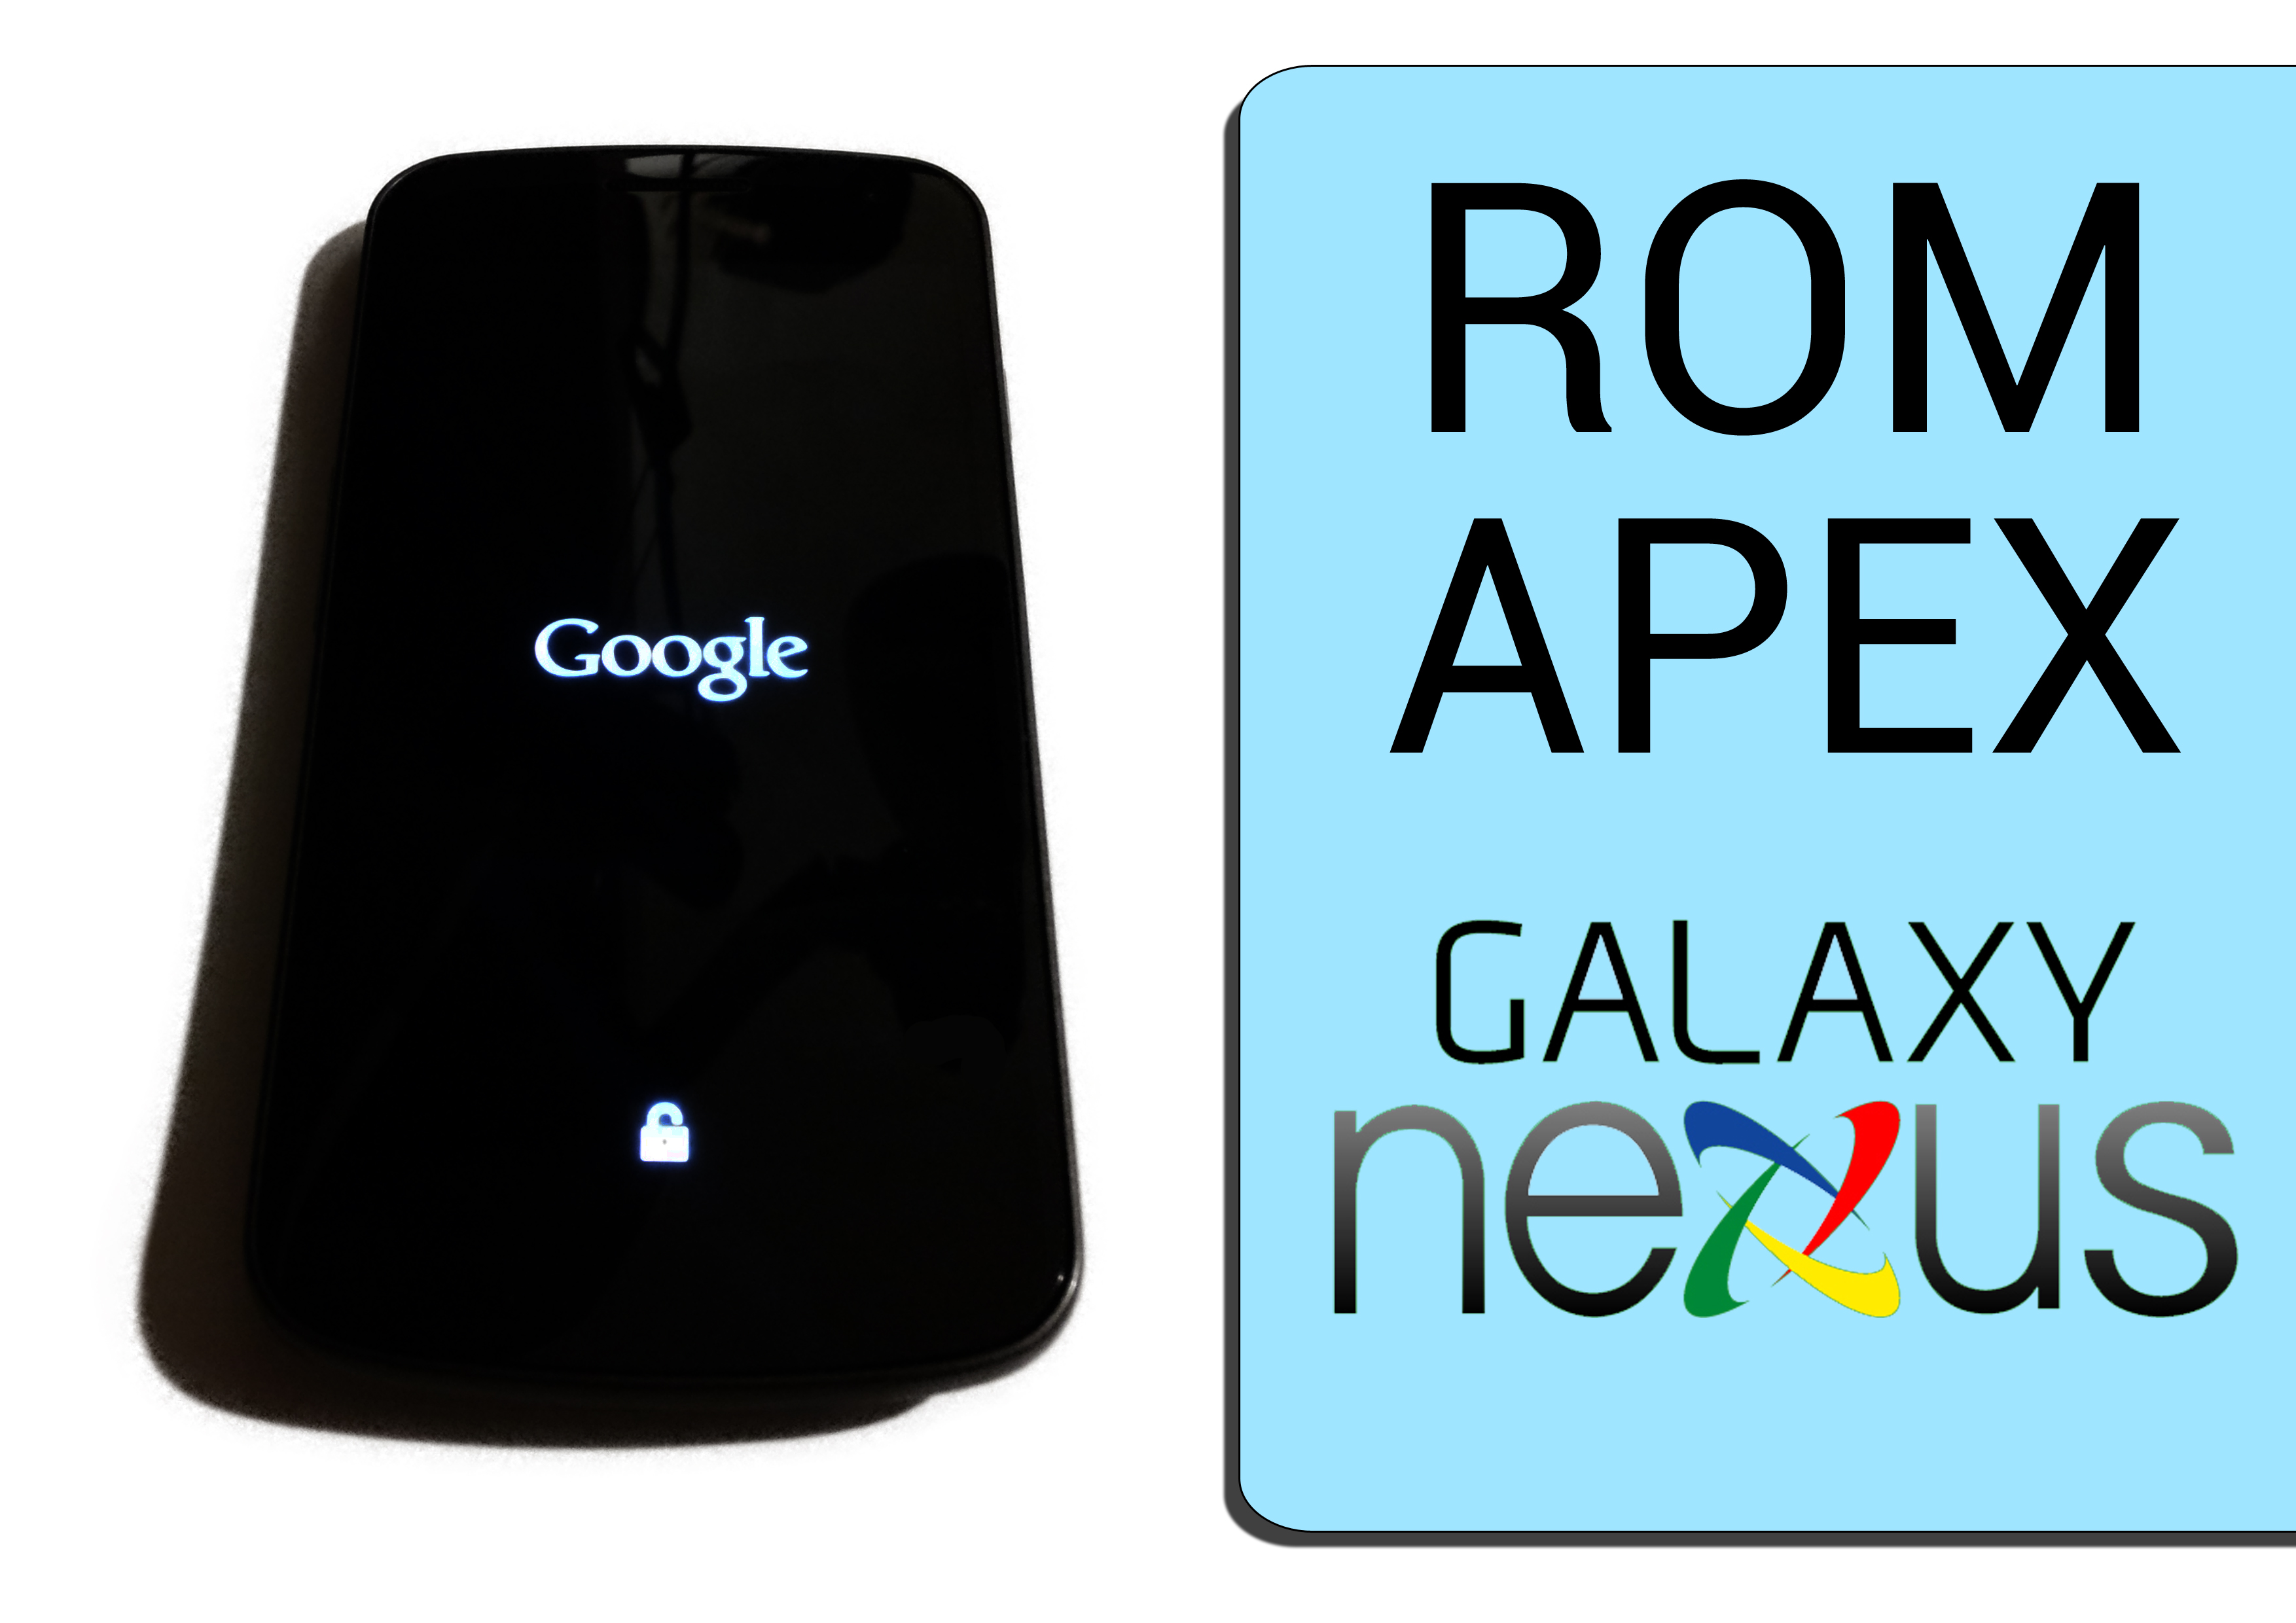 Rom Review | Apex Rom con Android 4.0.3 per Galaxy Nexus